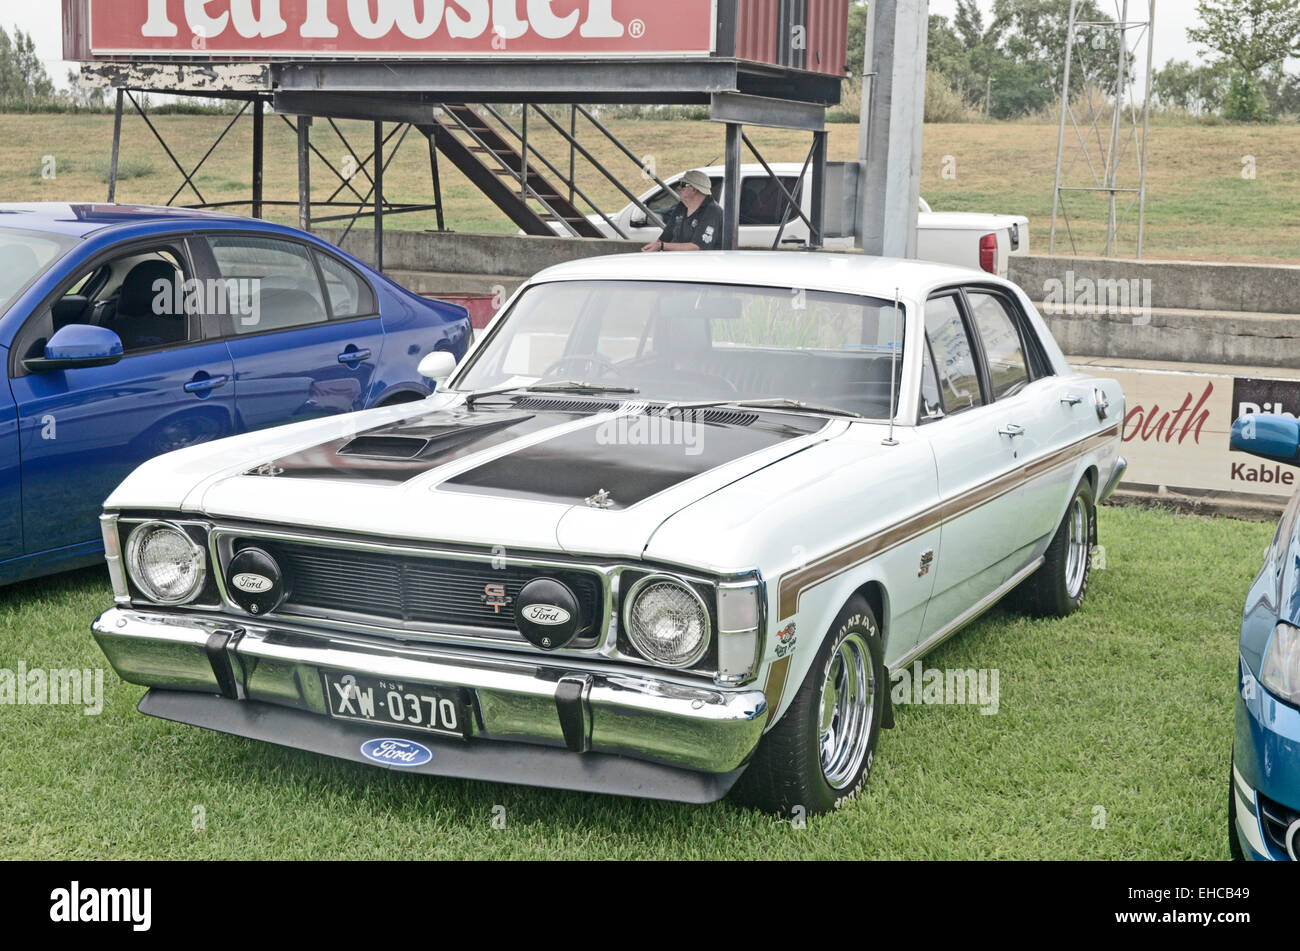 Ford Xw Falcon Gt By Ford Australia On Display At Tamworth Australia